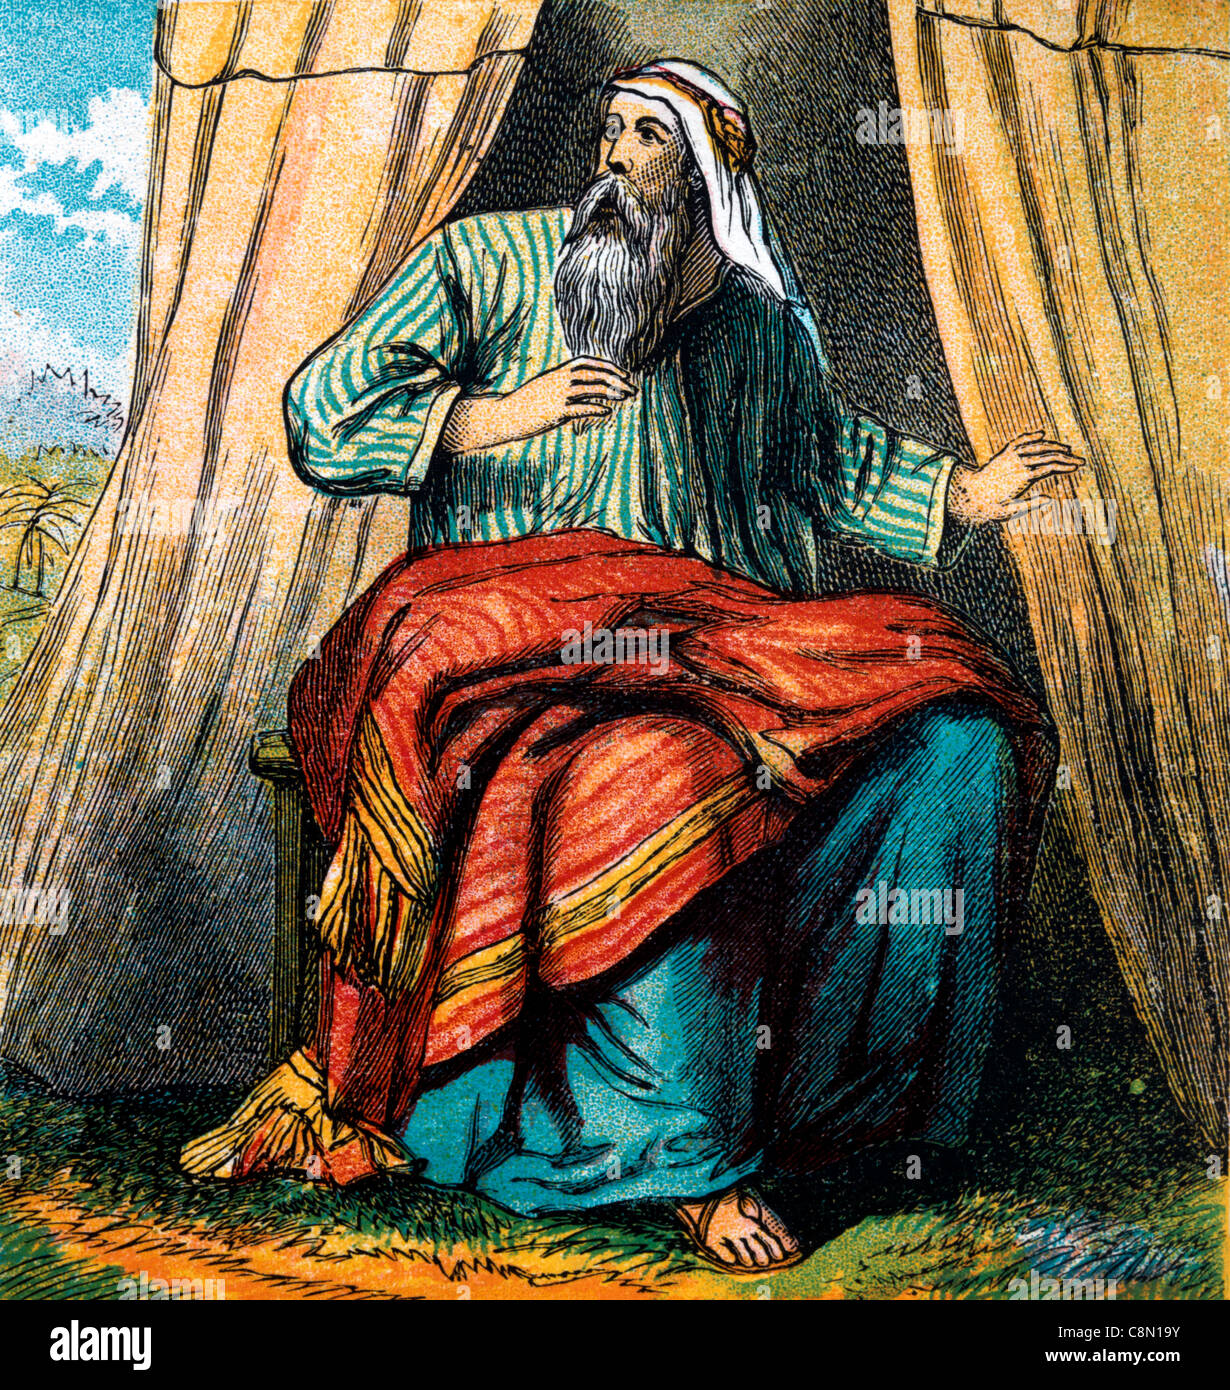 Bible Stories- Illustration Of Abraham Sitting At The Entrance Of His Tent In The Plains Of Mamre When He Is Visitied By Three Men In The Presence Of God ... & Bible Stories- Illustration Of Abraham Sitting At The Entrance Of ...